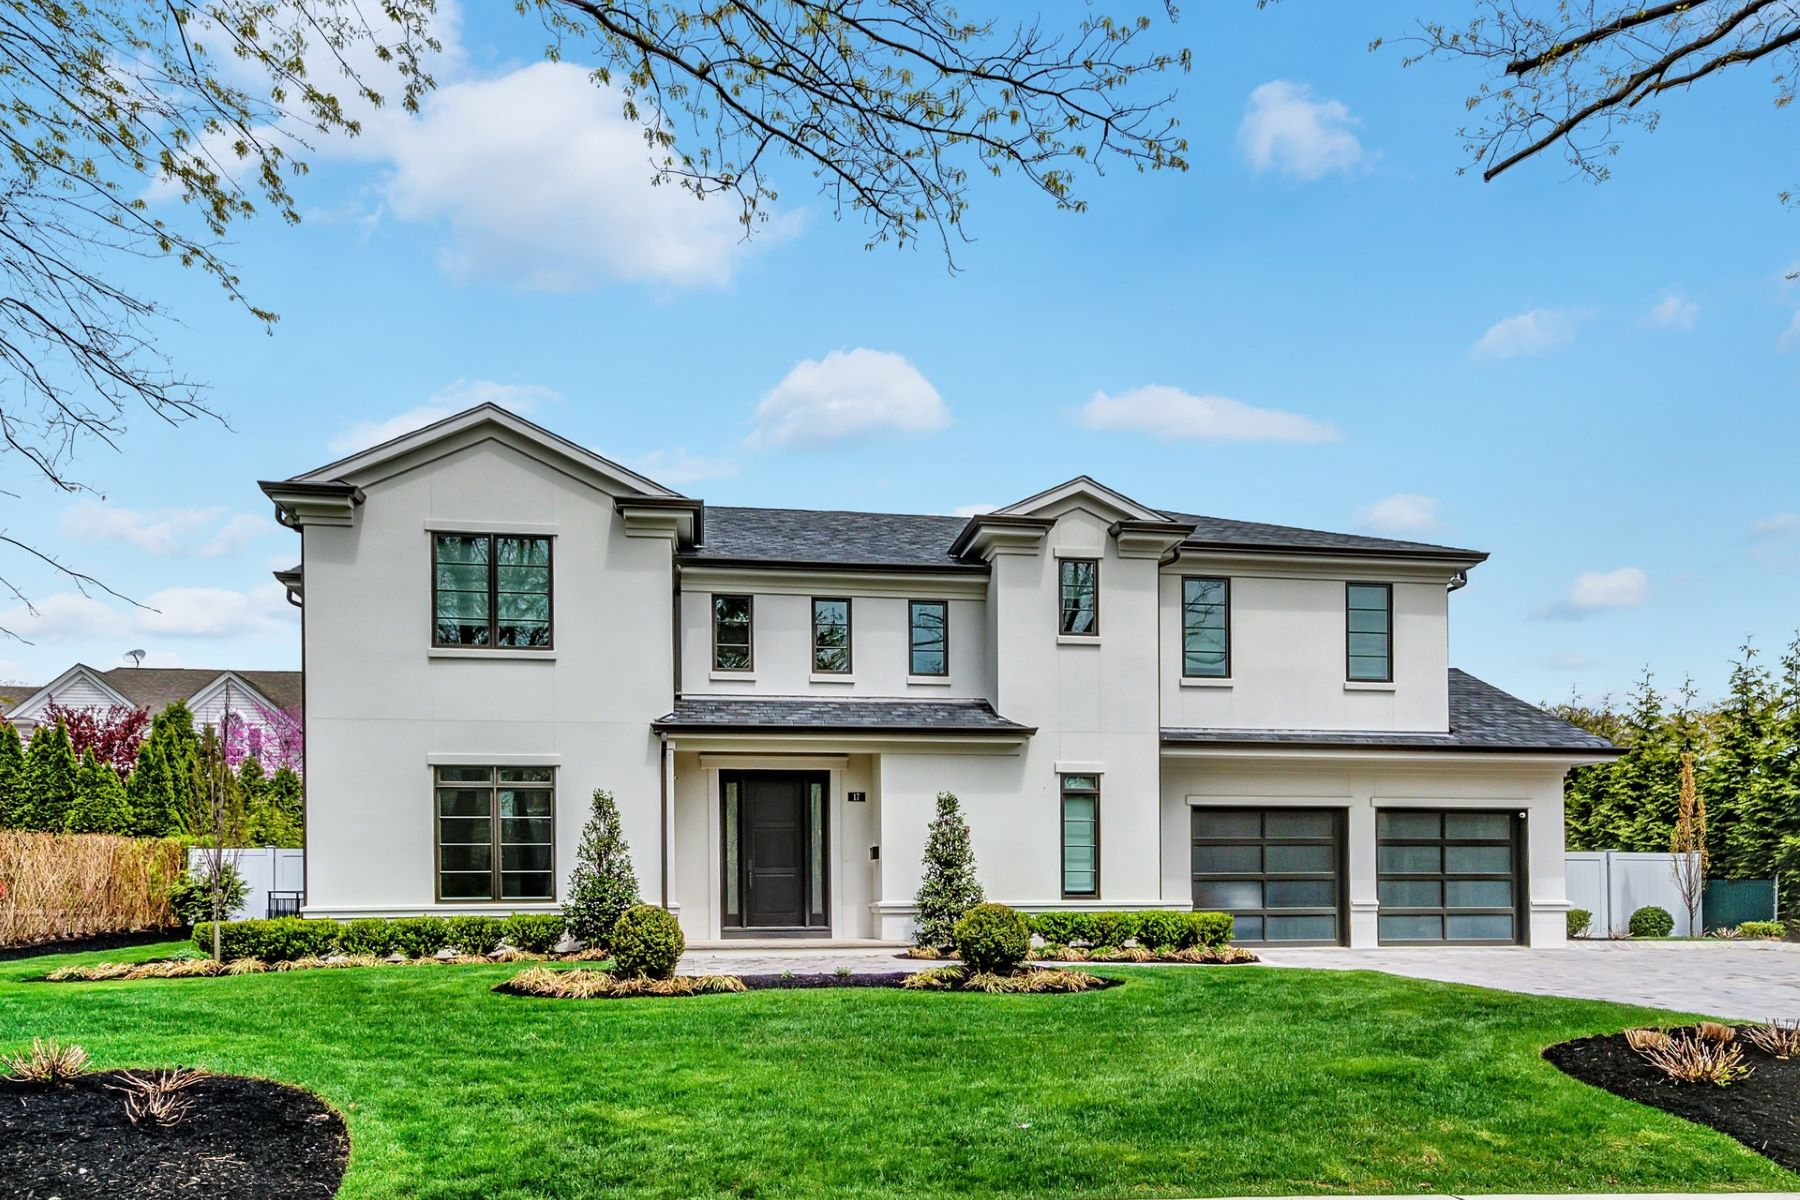 Single Family Homes for Sale at Architectural Gem 17 Allison Drive, Englewood Cliffs, New Jersey 07632 United States